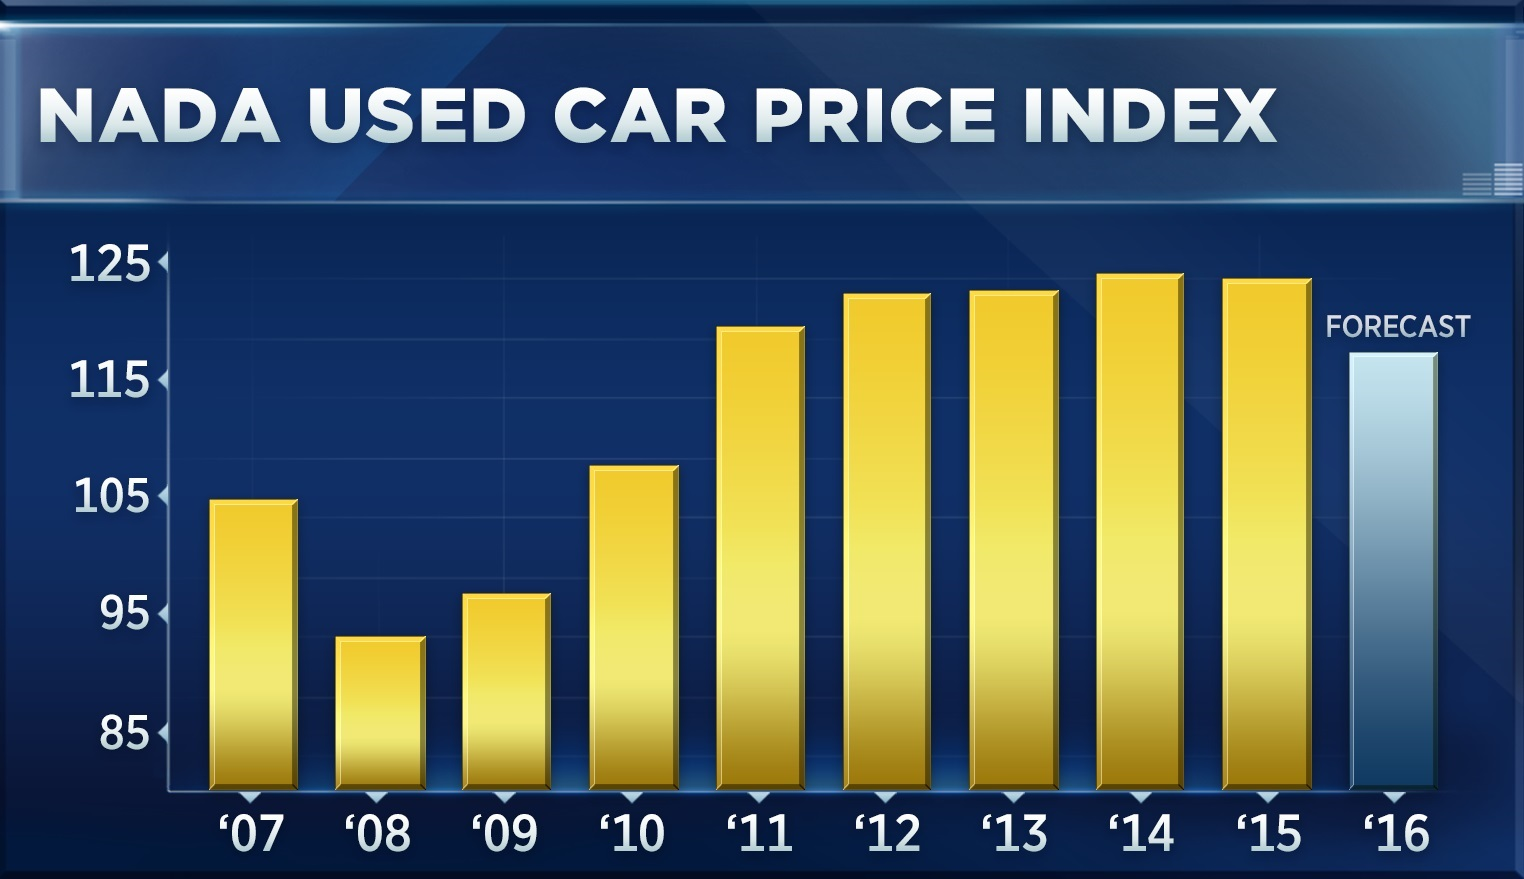 Its The First Time Since 2008 That Prices Of Used Cars Are